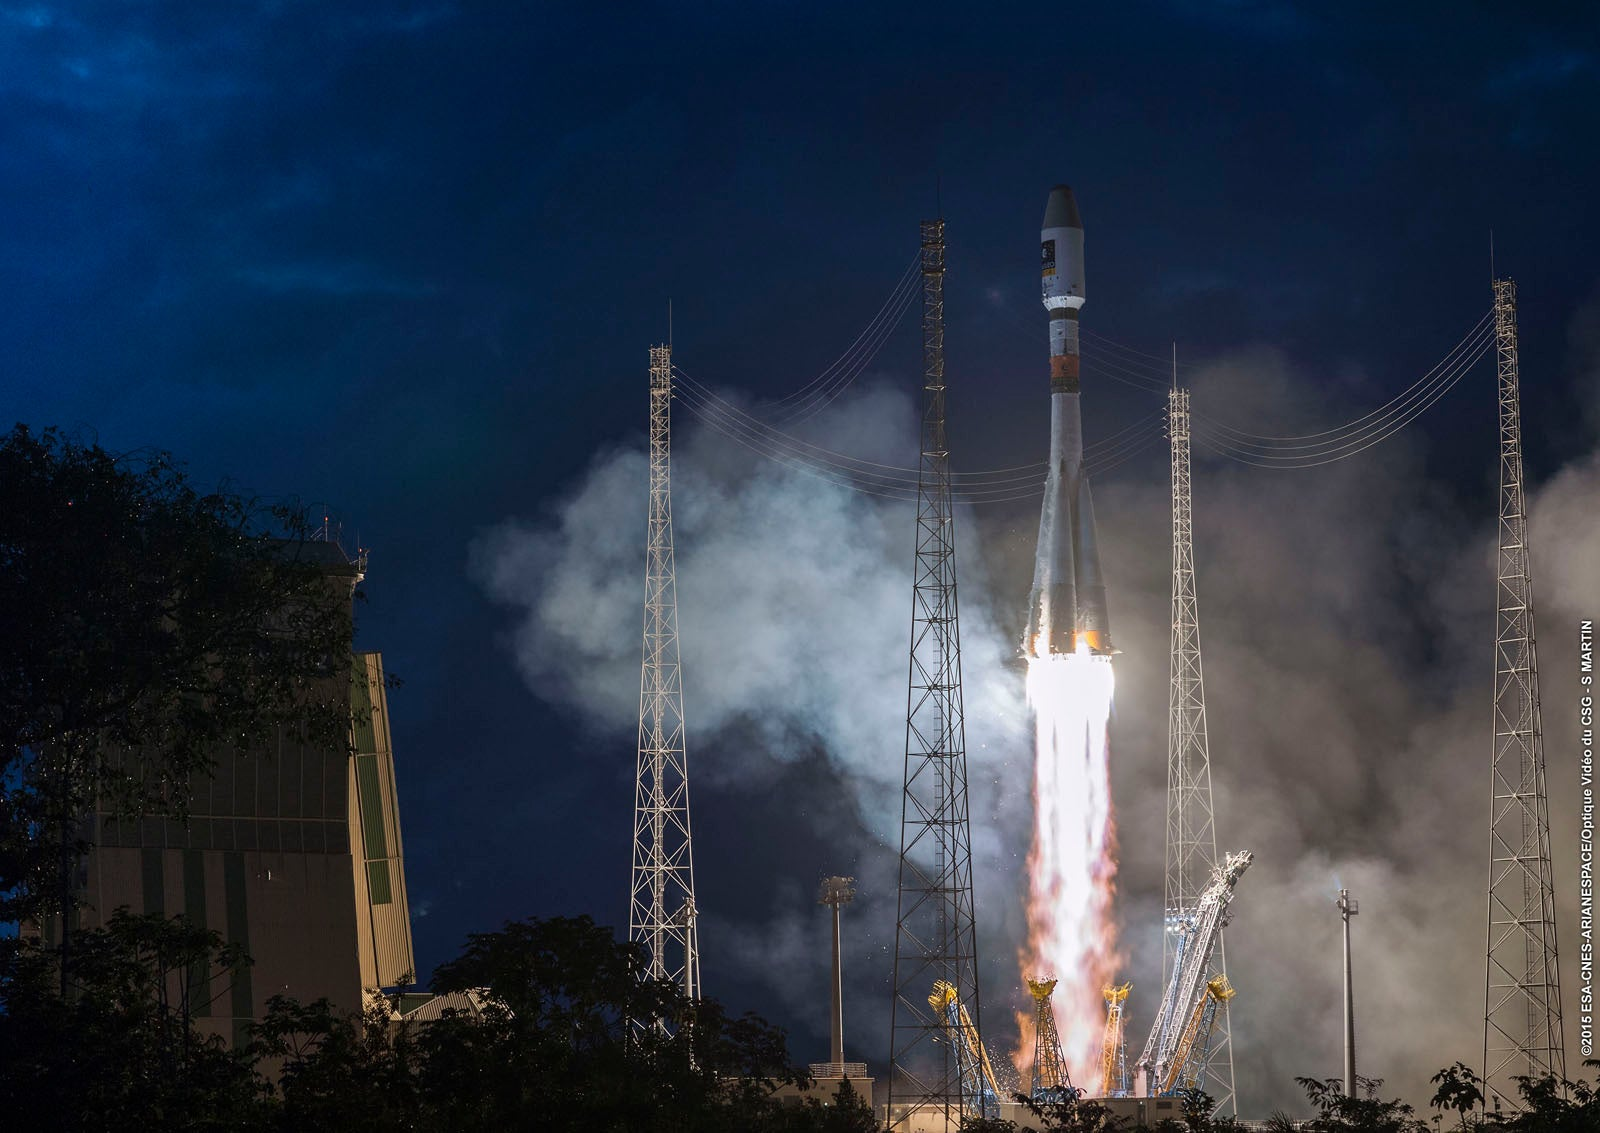 Check Out Three Amazing Rocket Launches That All Happened on One Day